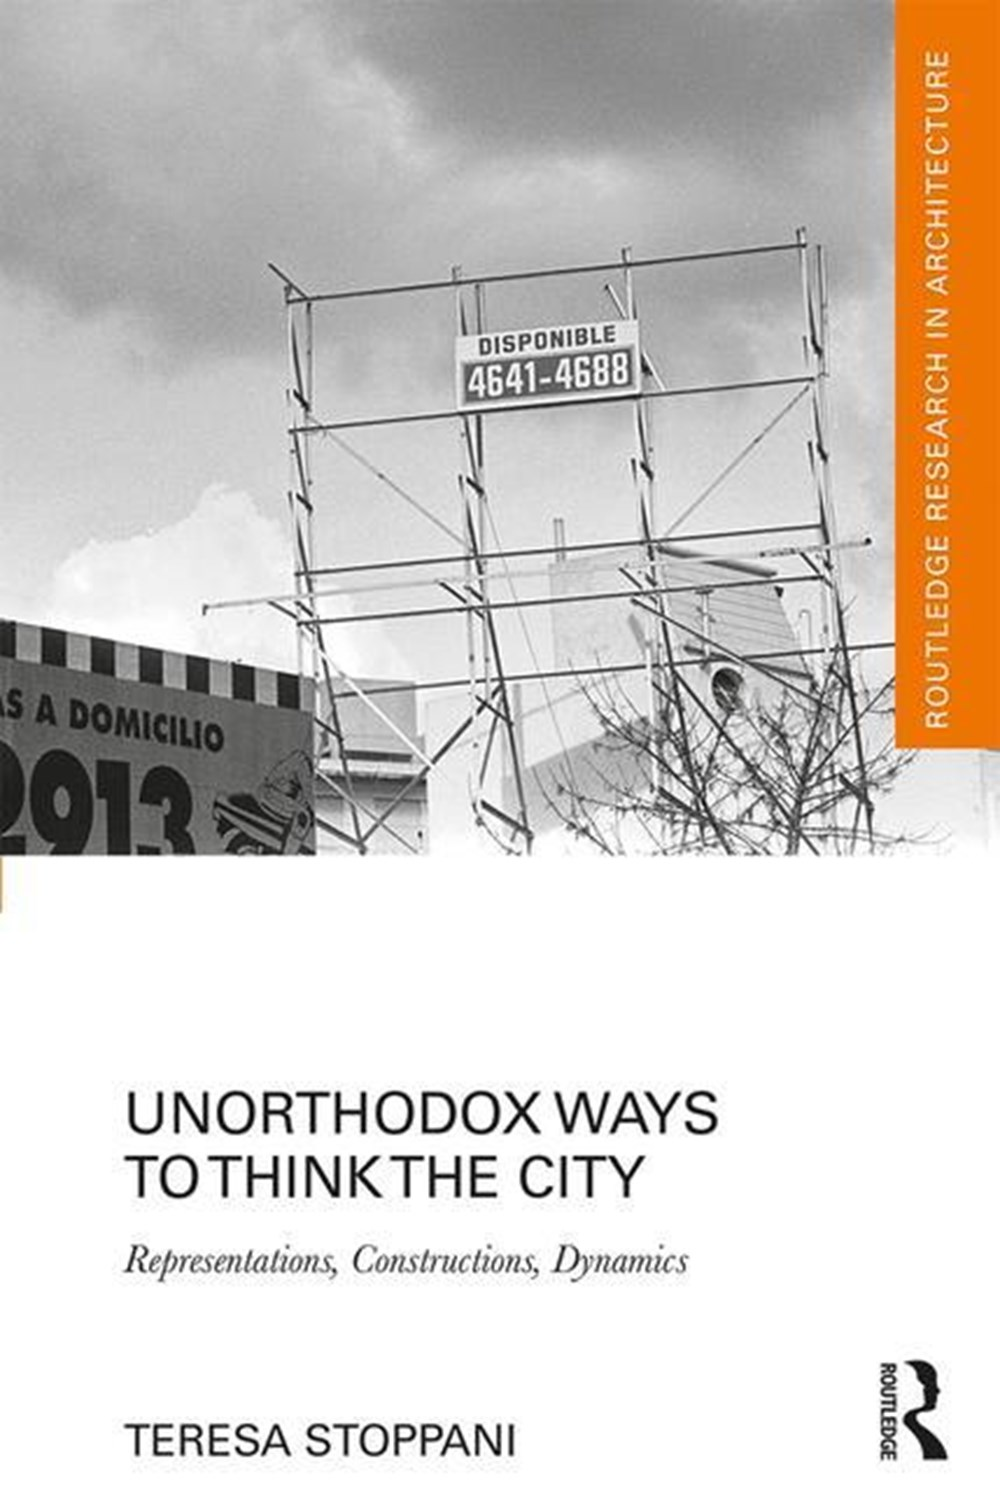 Unorthodox Ways to Think the City Representations, Constructions, Dynamics